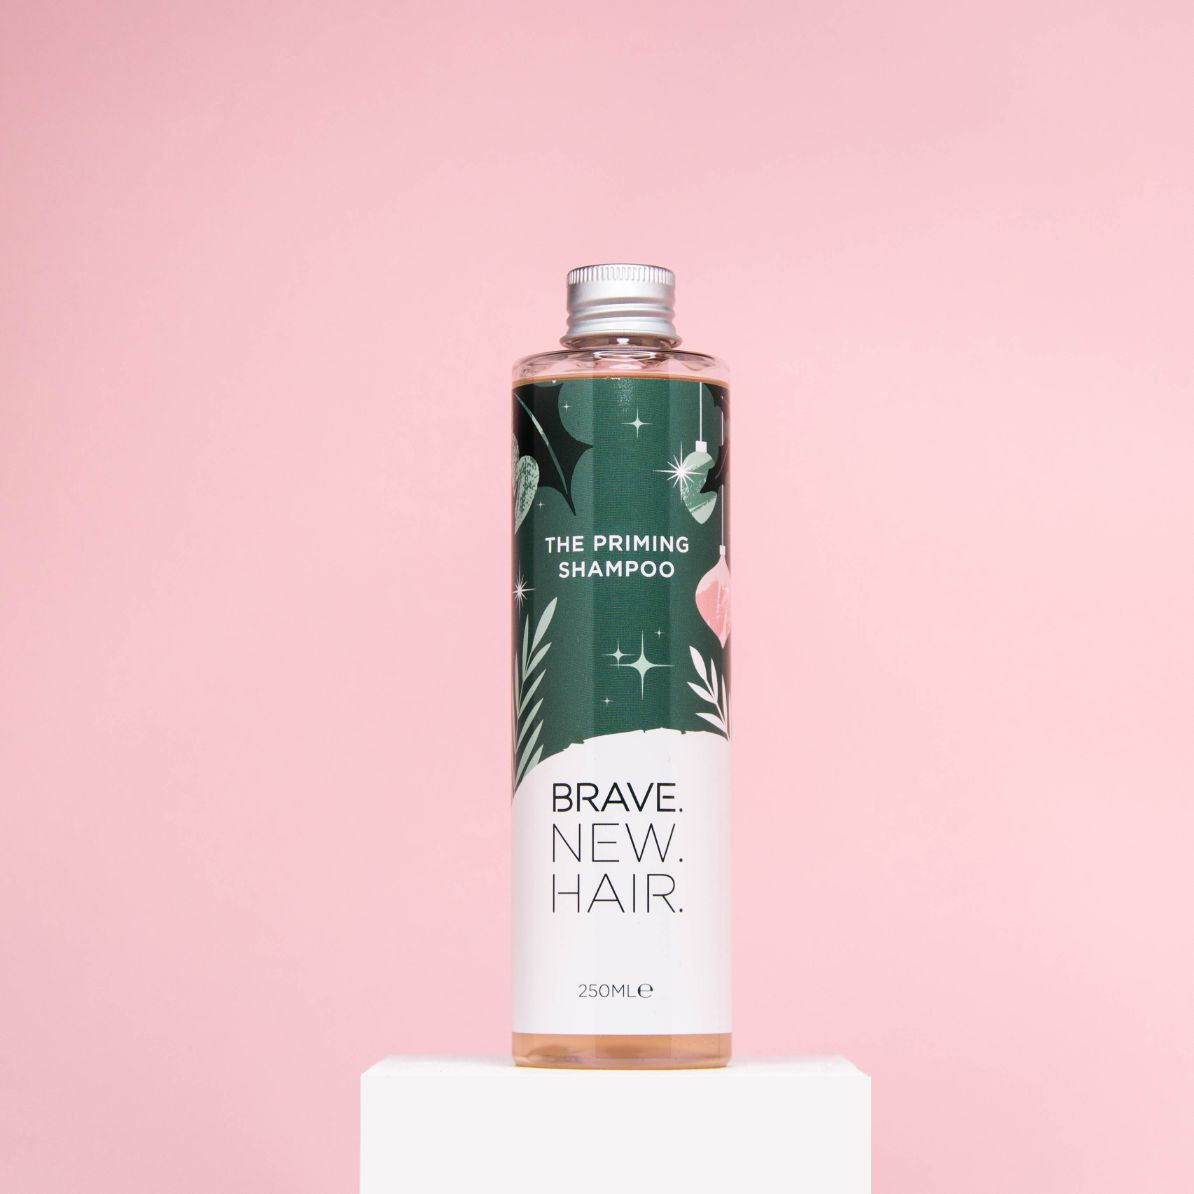 THE PRIMING SHAMPOO, 250мл.